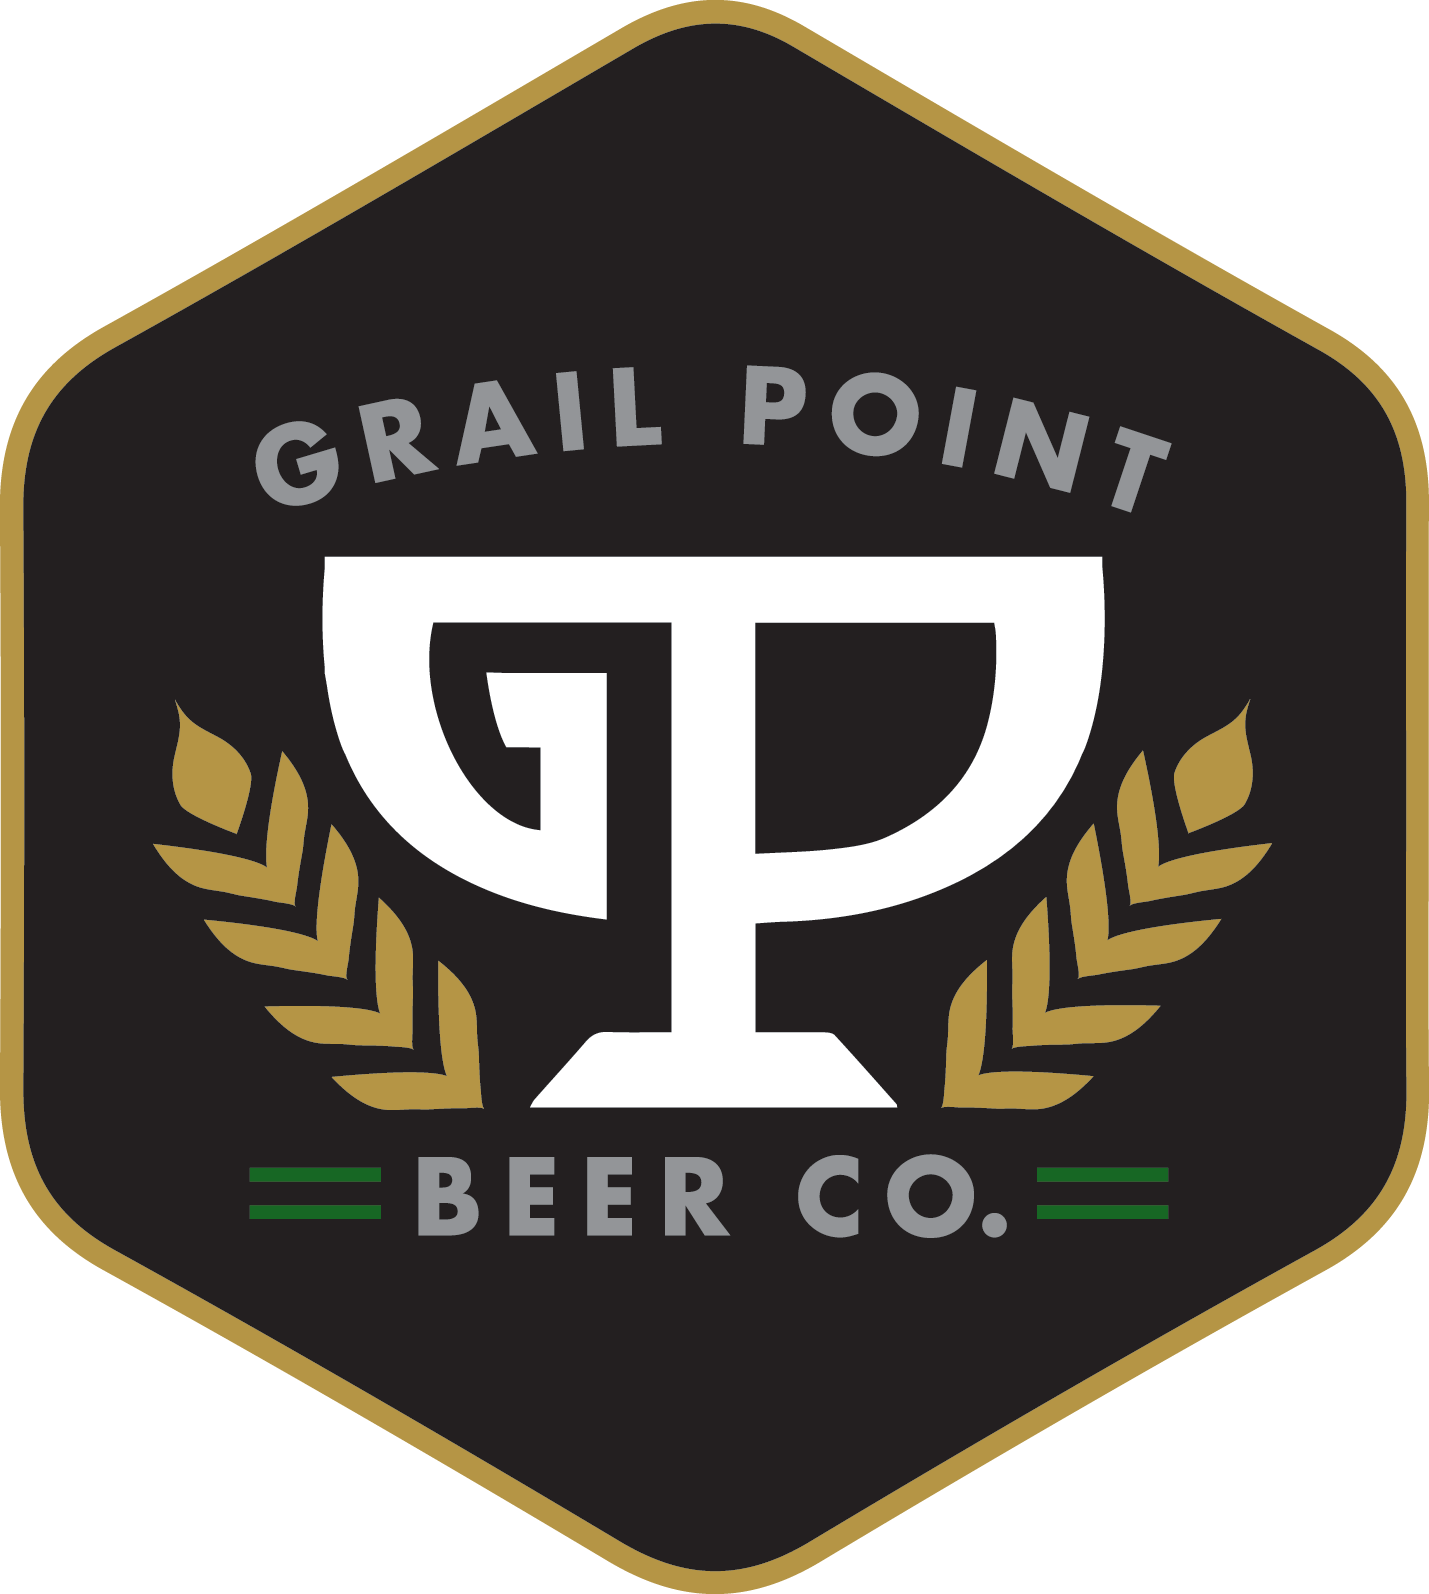 Grail Point Beer Co.